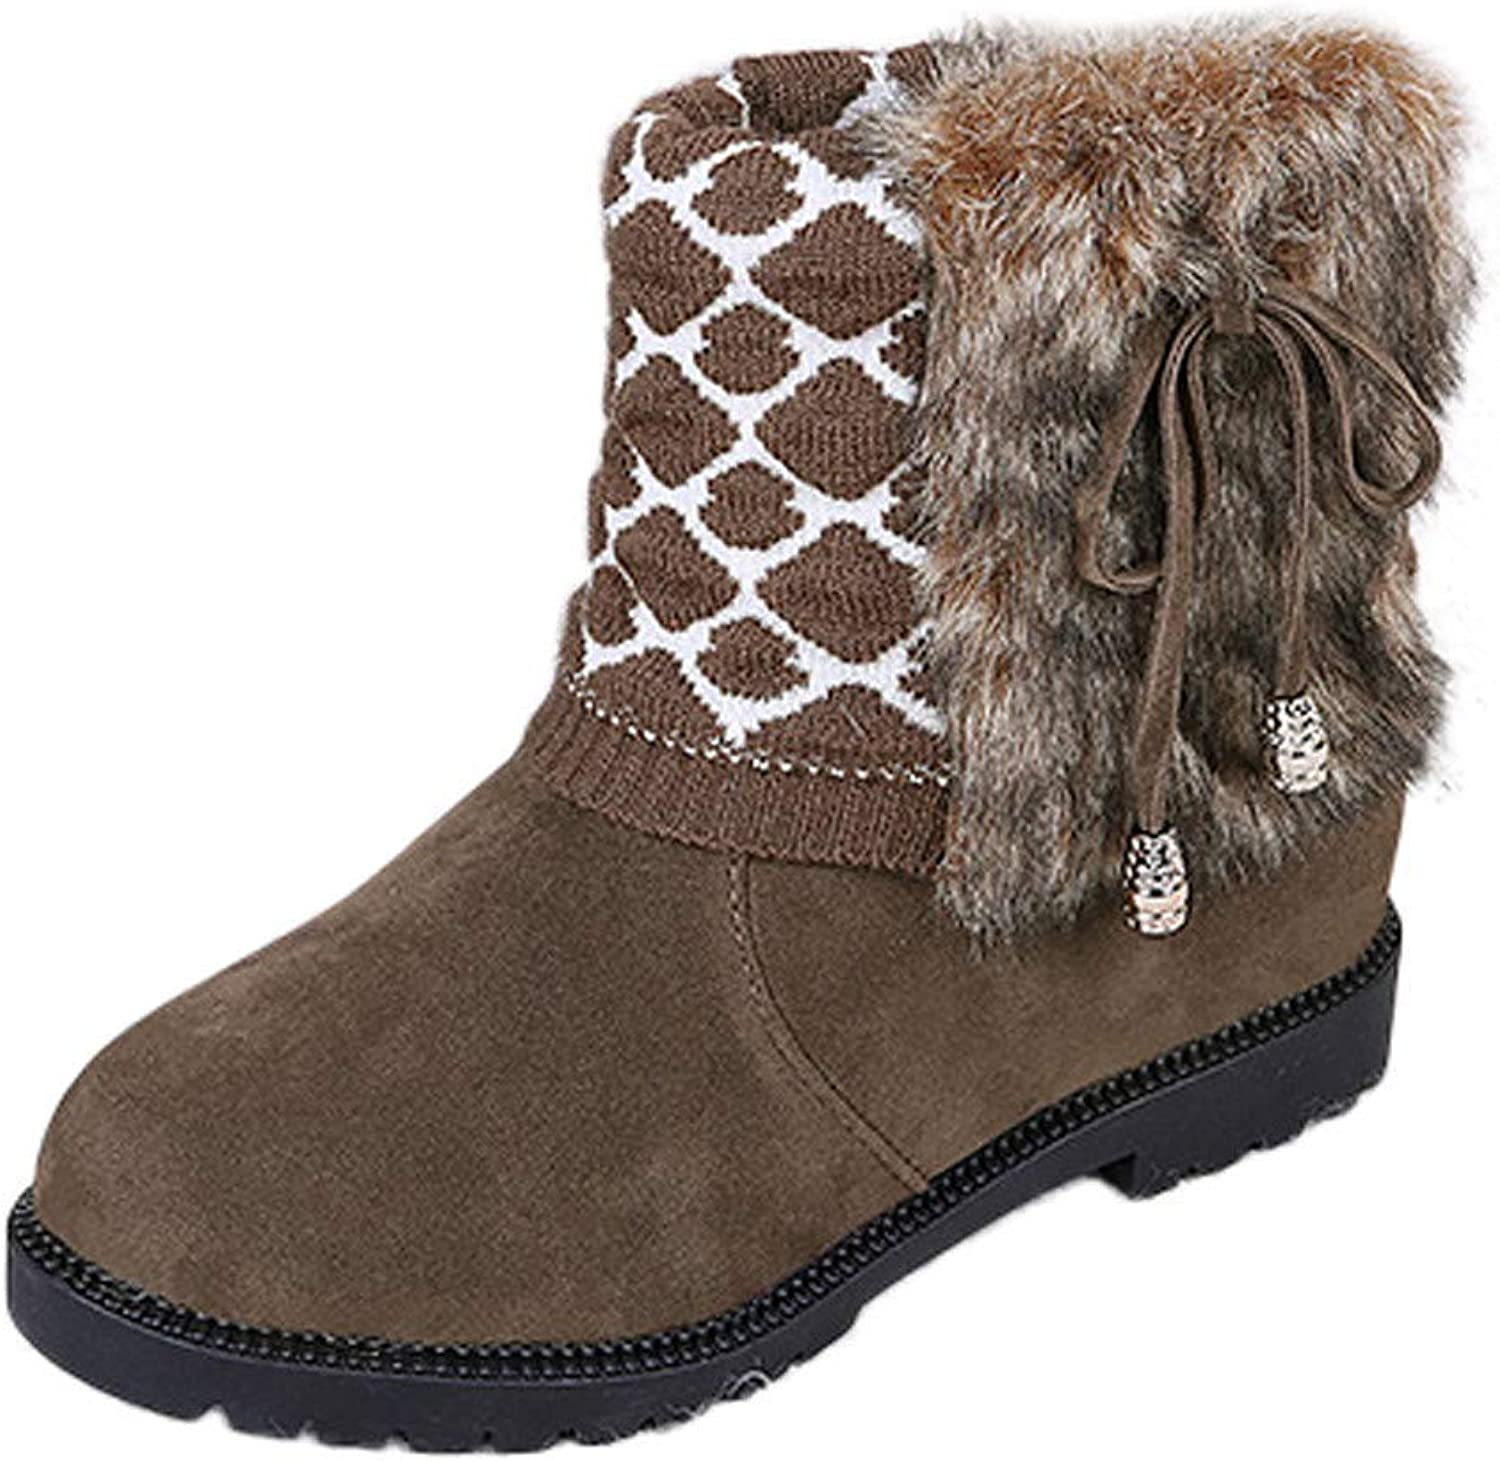 A-LING Snow Boots,Women's Snow Boots Flat Slip On Platform Ankle Boots